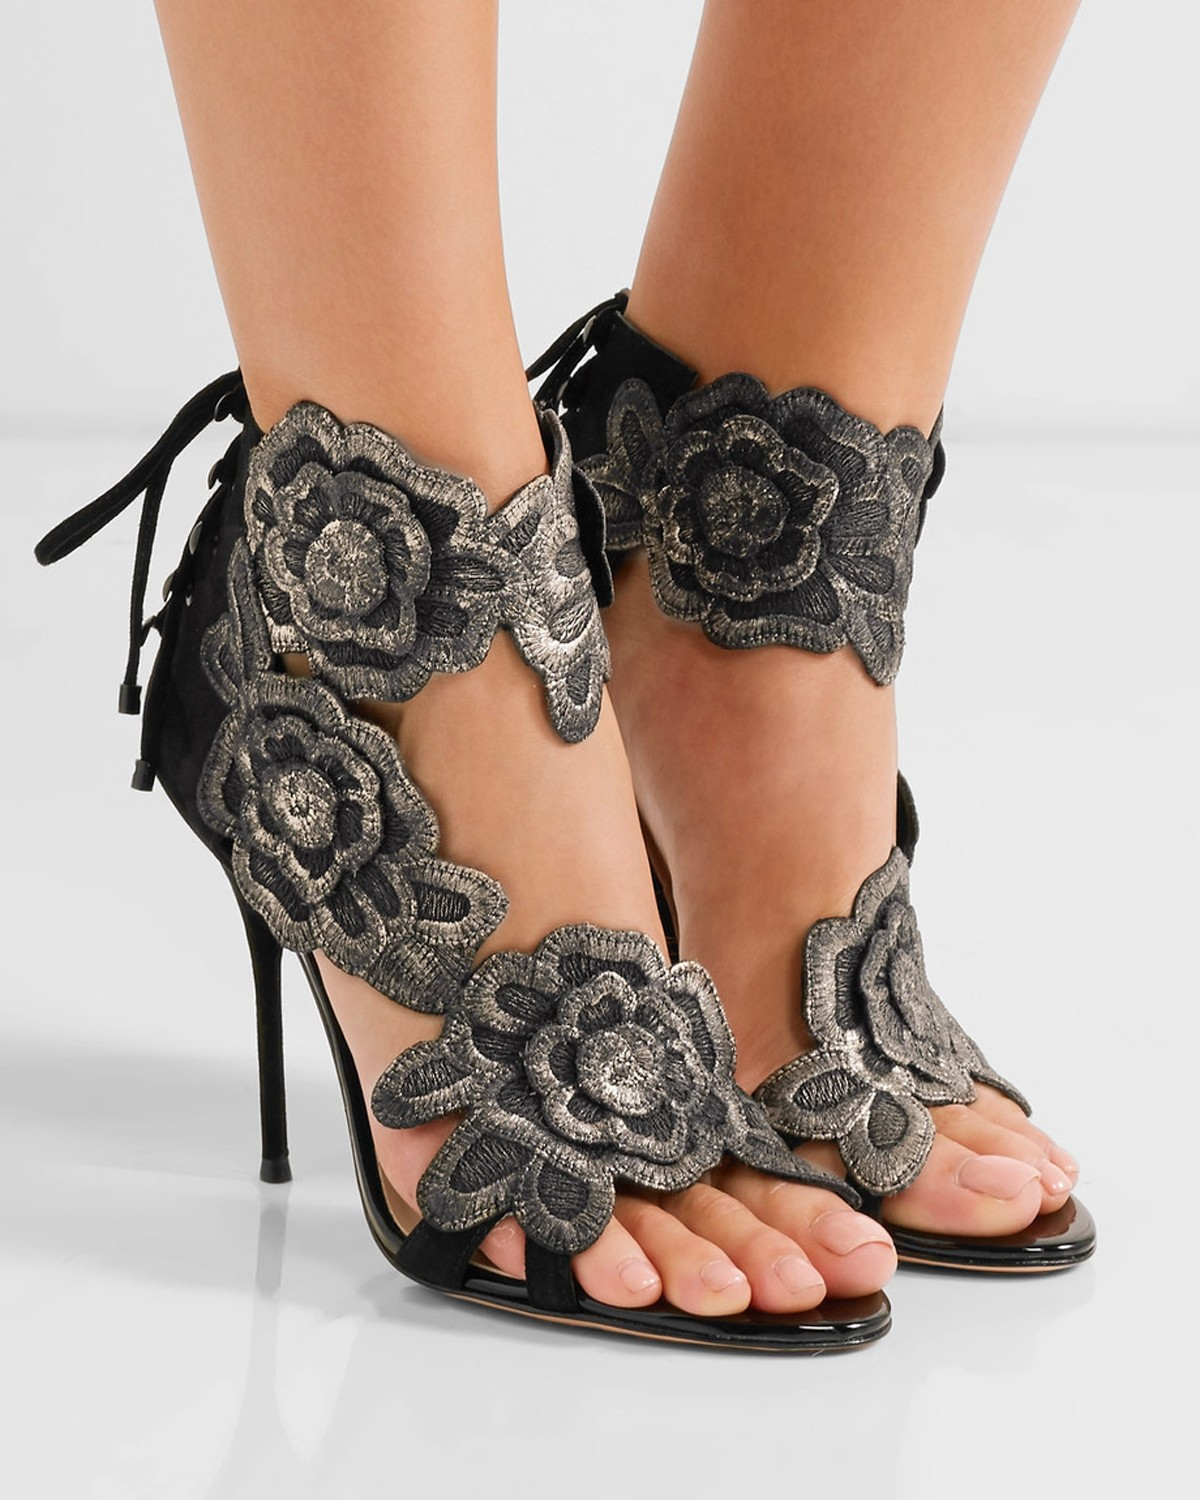 898553a208b5 SOPHIA WEBSTER Winona embroidered suede sandals - Shoes Post